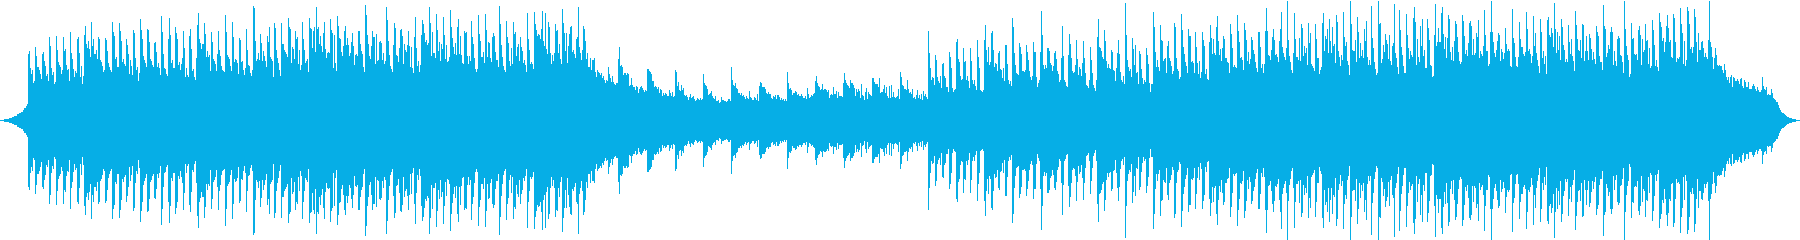 Happy and energetic track's reproduced waveform